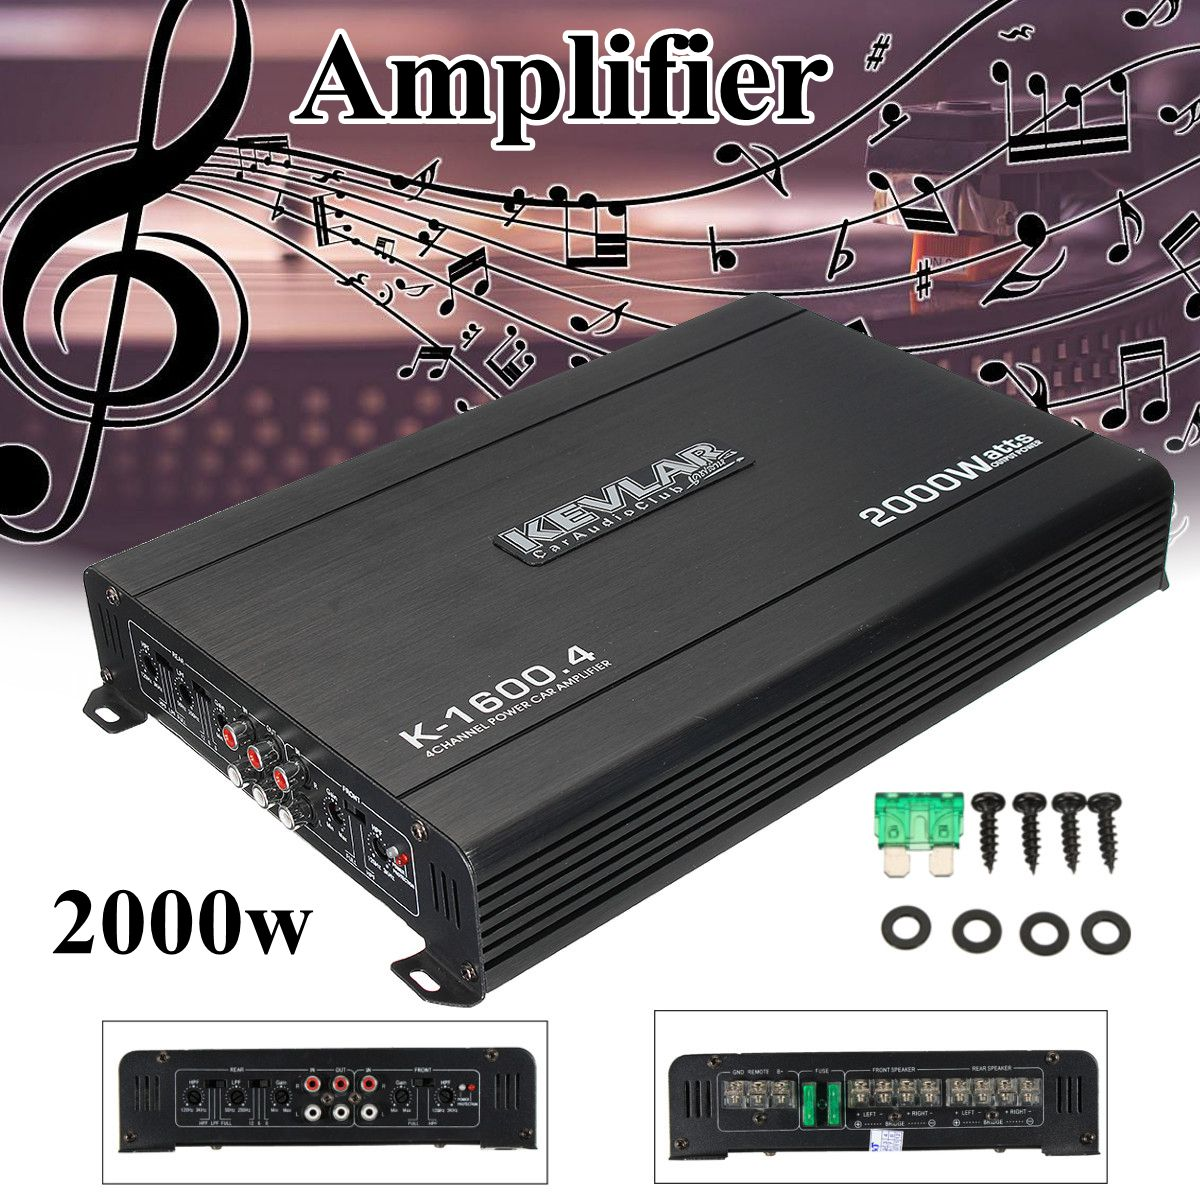 4 Channel Car Home Amplifier Audio 2000w 12dB High Power Car Amplifiers High Power for car home black 12v car amplifier high power 1900w audio 4 channel 4 way amplifiers booster auto free shipping dropping